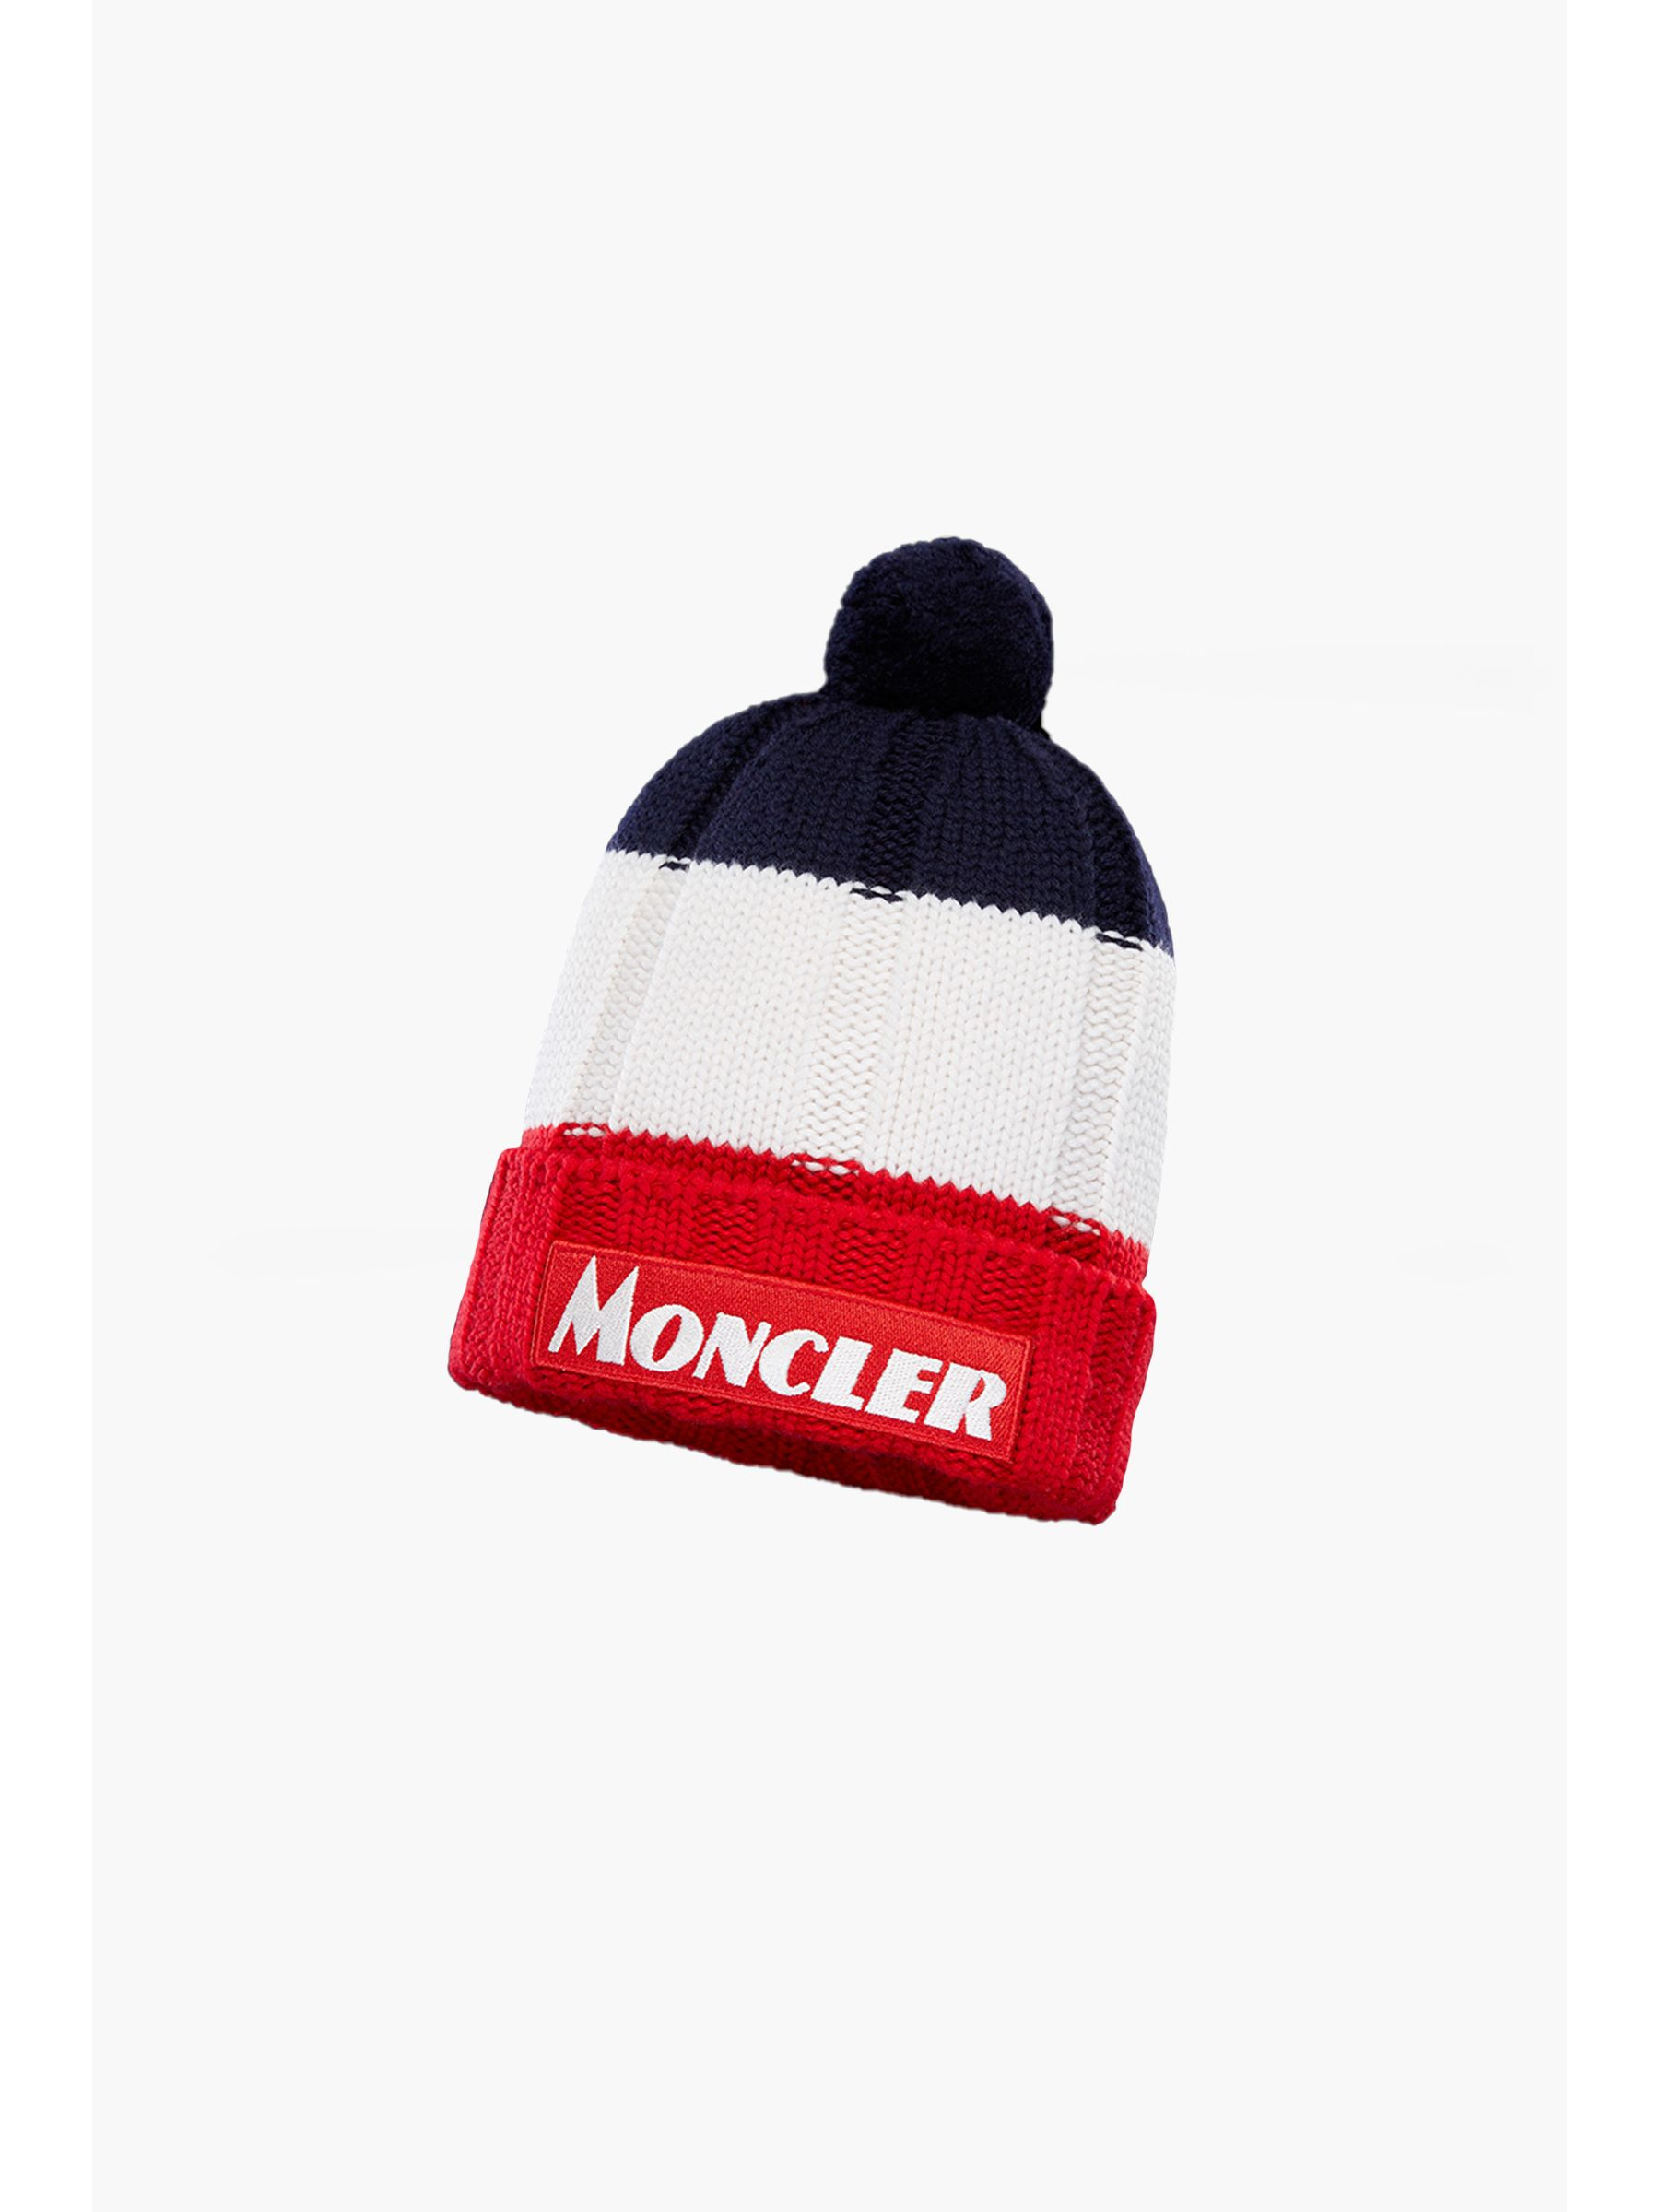 111165269_moncler_beretto_tricot_455_a.jpg